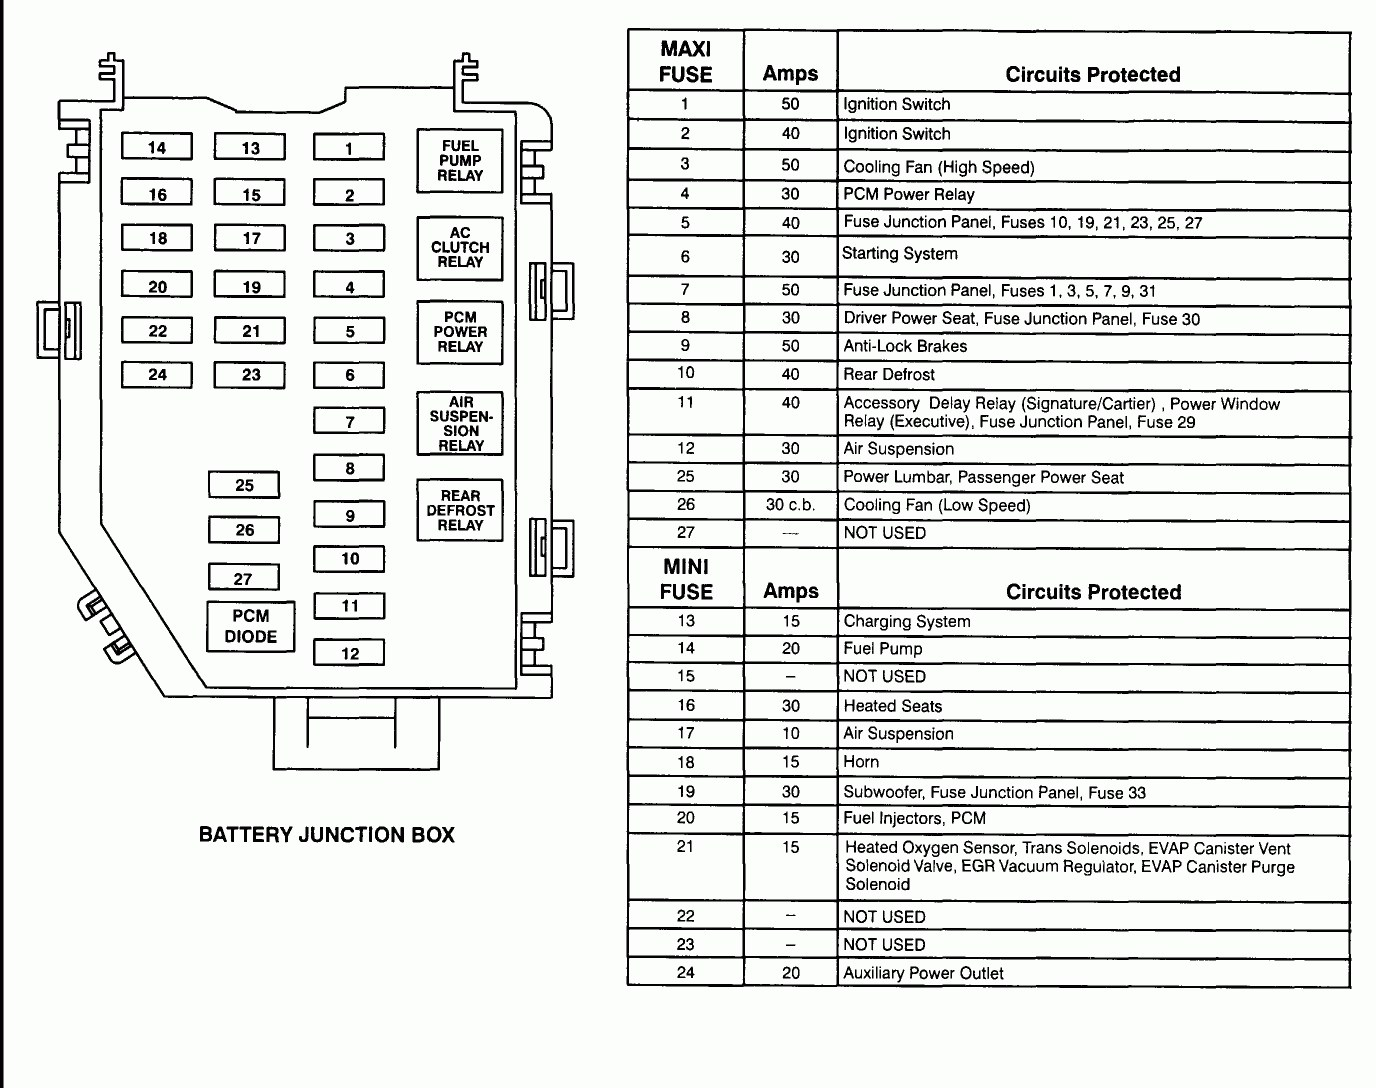 2004 Navigator Fuse Box Diagram - Wiring Diagram Direct slim-produce -  slim-produce.siciliabeb.it | C5 Fuse Box Diagram |  | slim-produce.siciliabeb.it